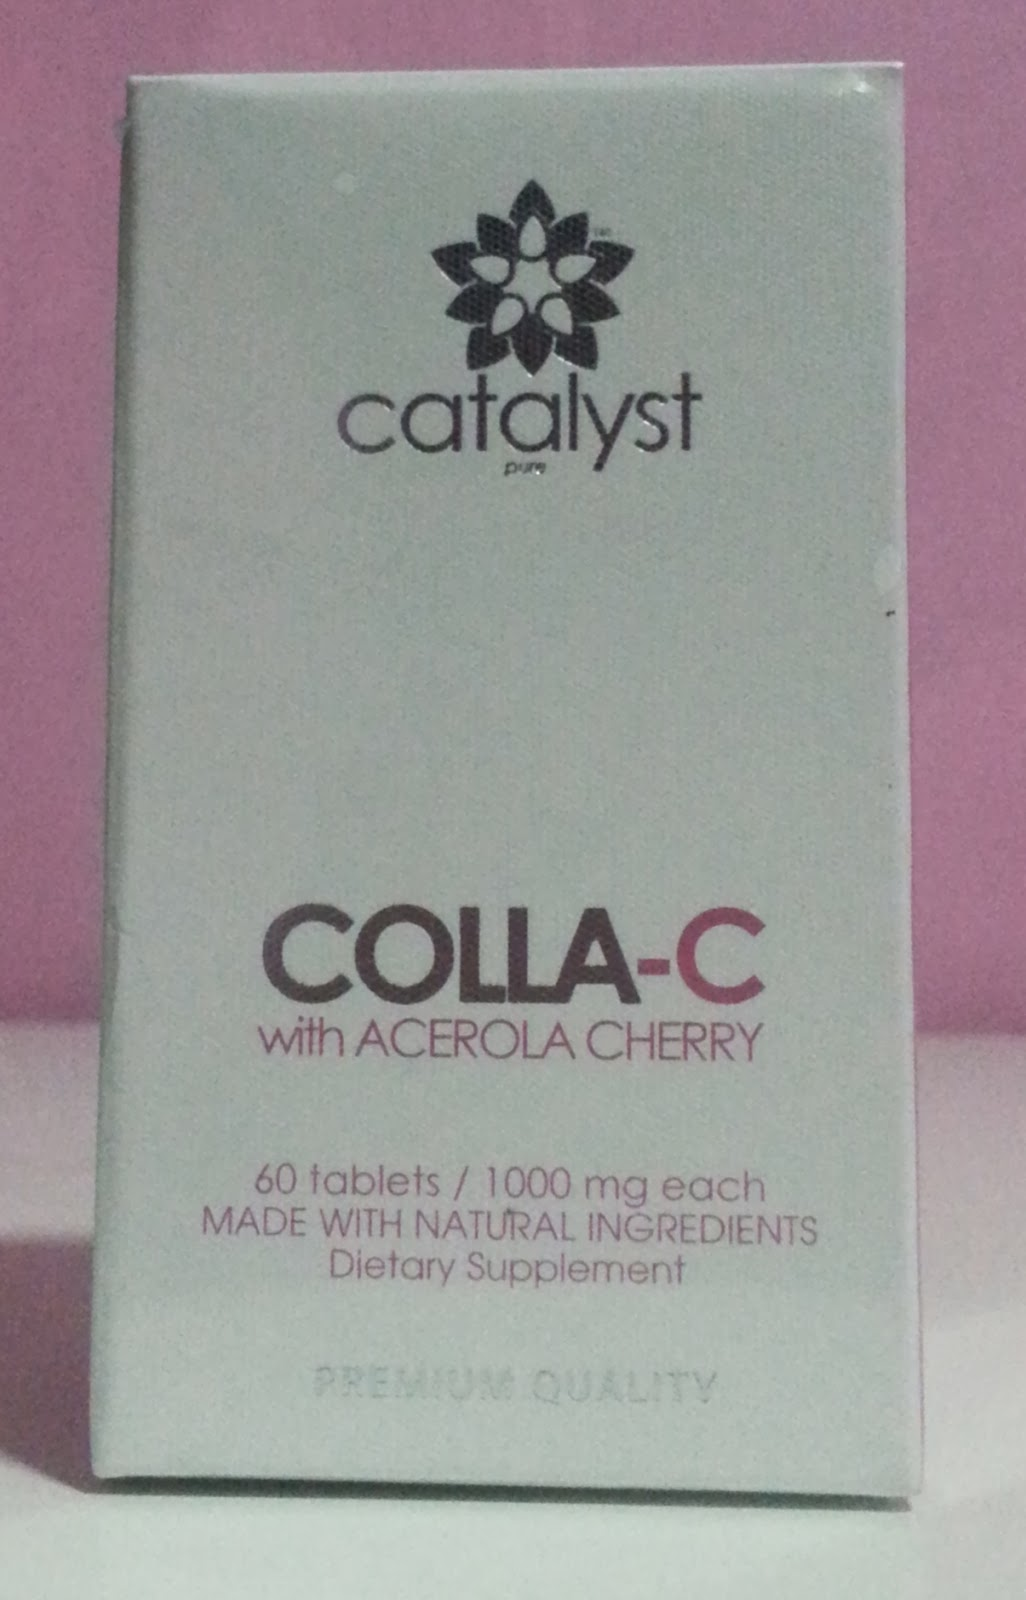 COLLA  C CATALYST